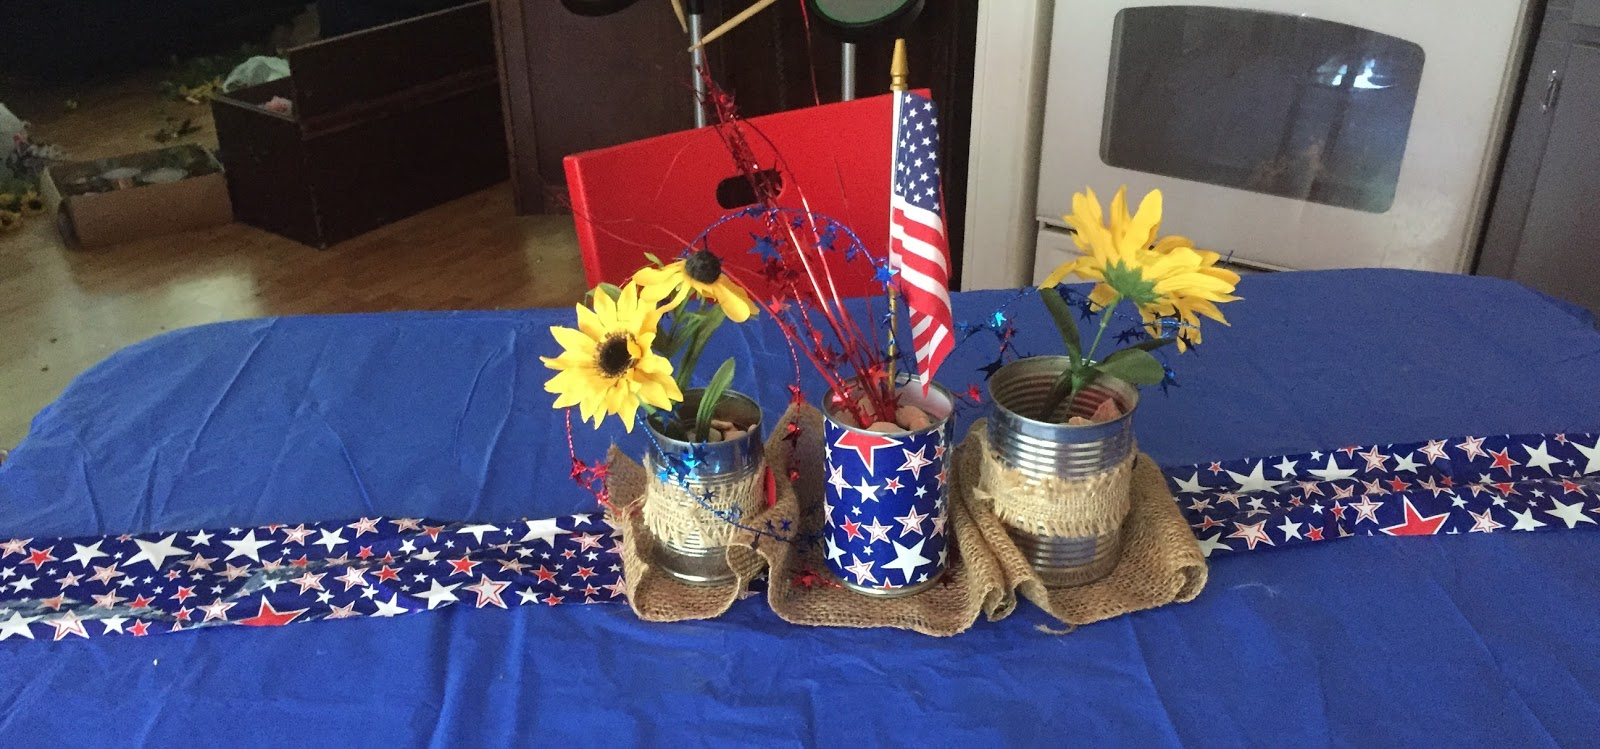 Eagle Party Decorations Straw Bearie Designs Re Using Table Party Decorations